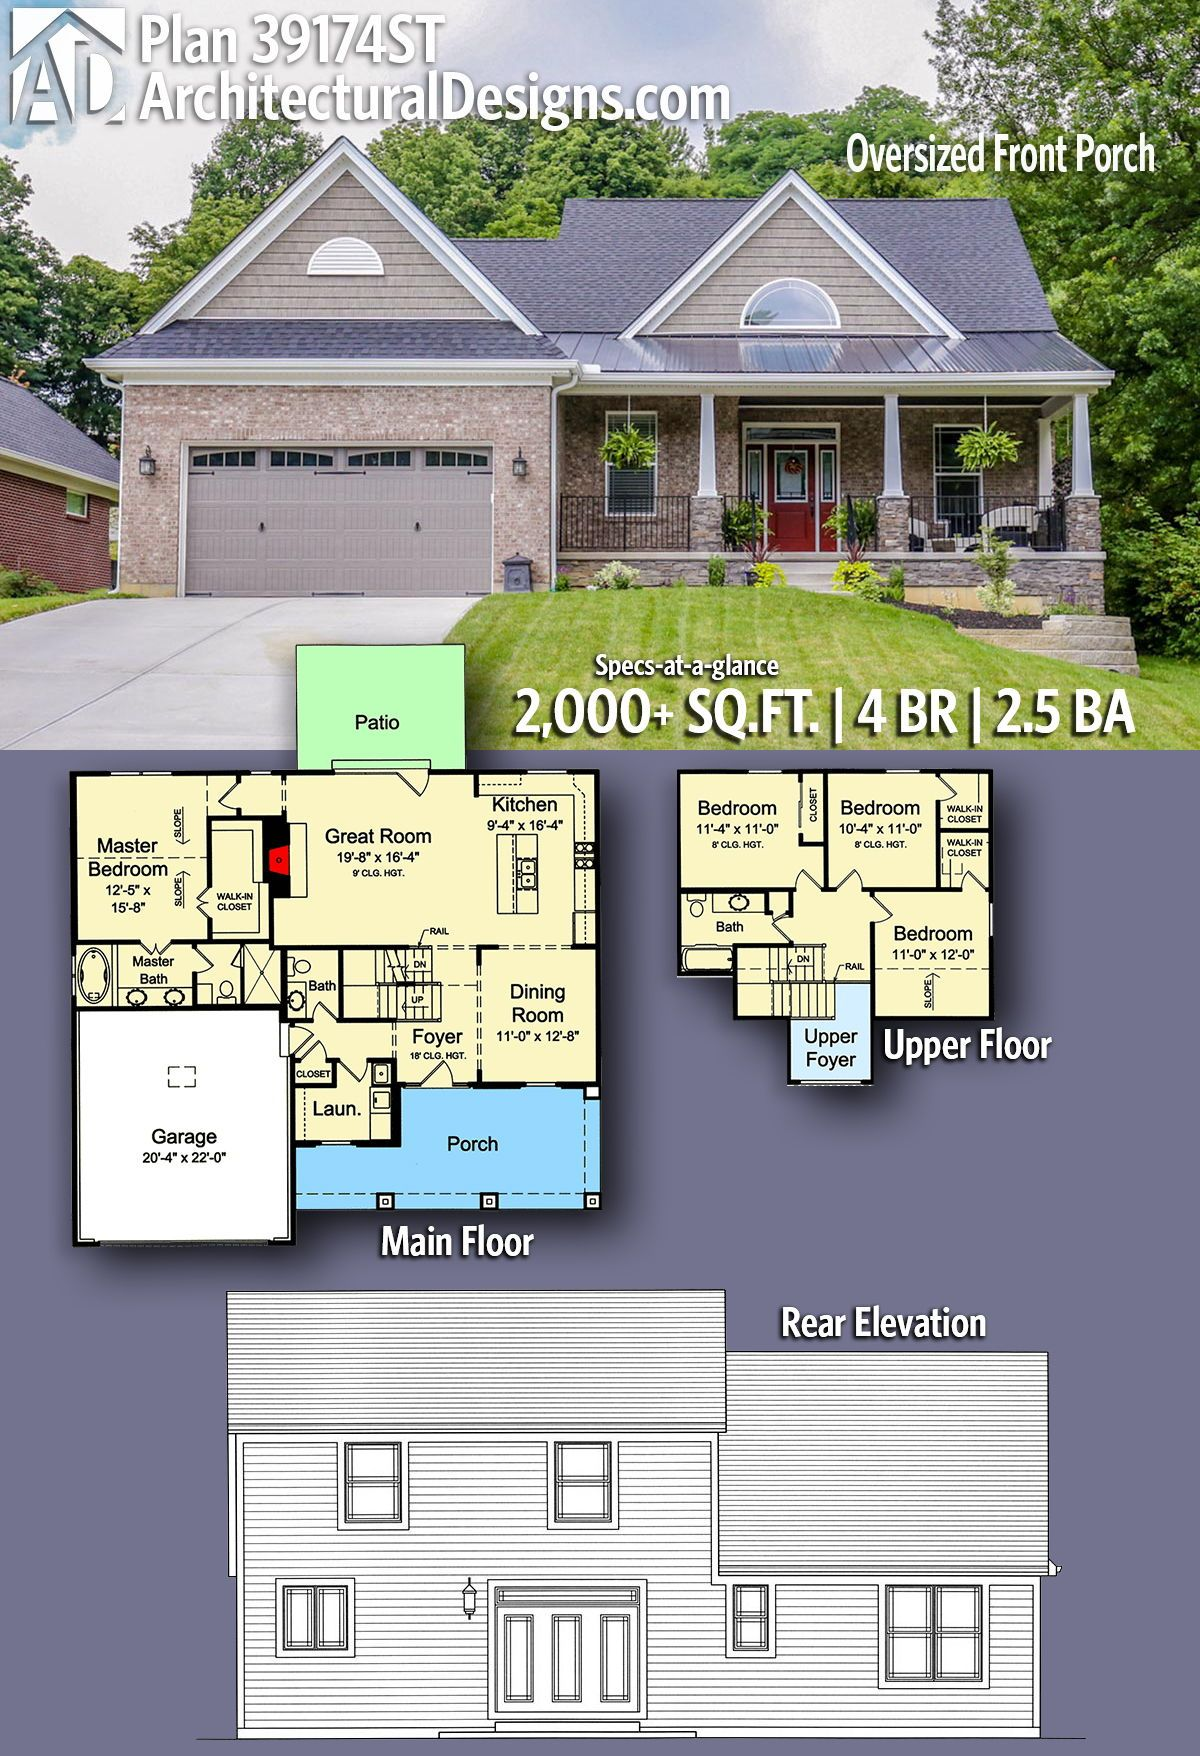 Plan 39174st 4 Bed House Plan With Oversized Front Porch New House Plans Dream House Plans House Plans